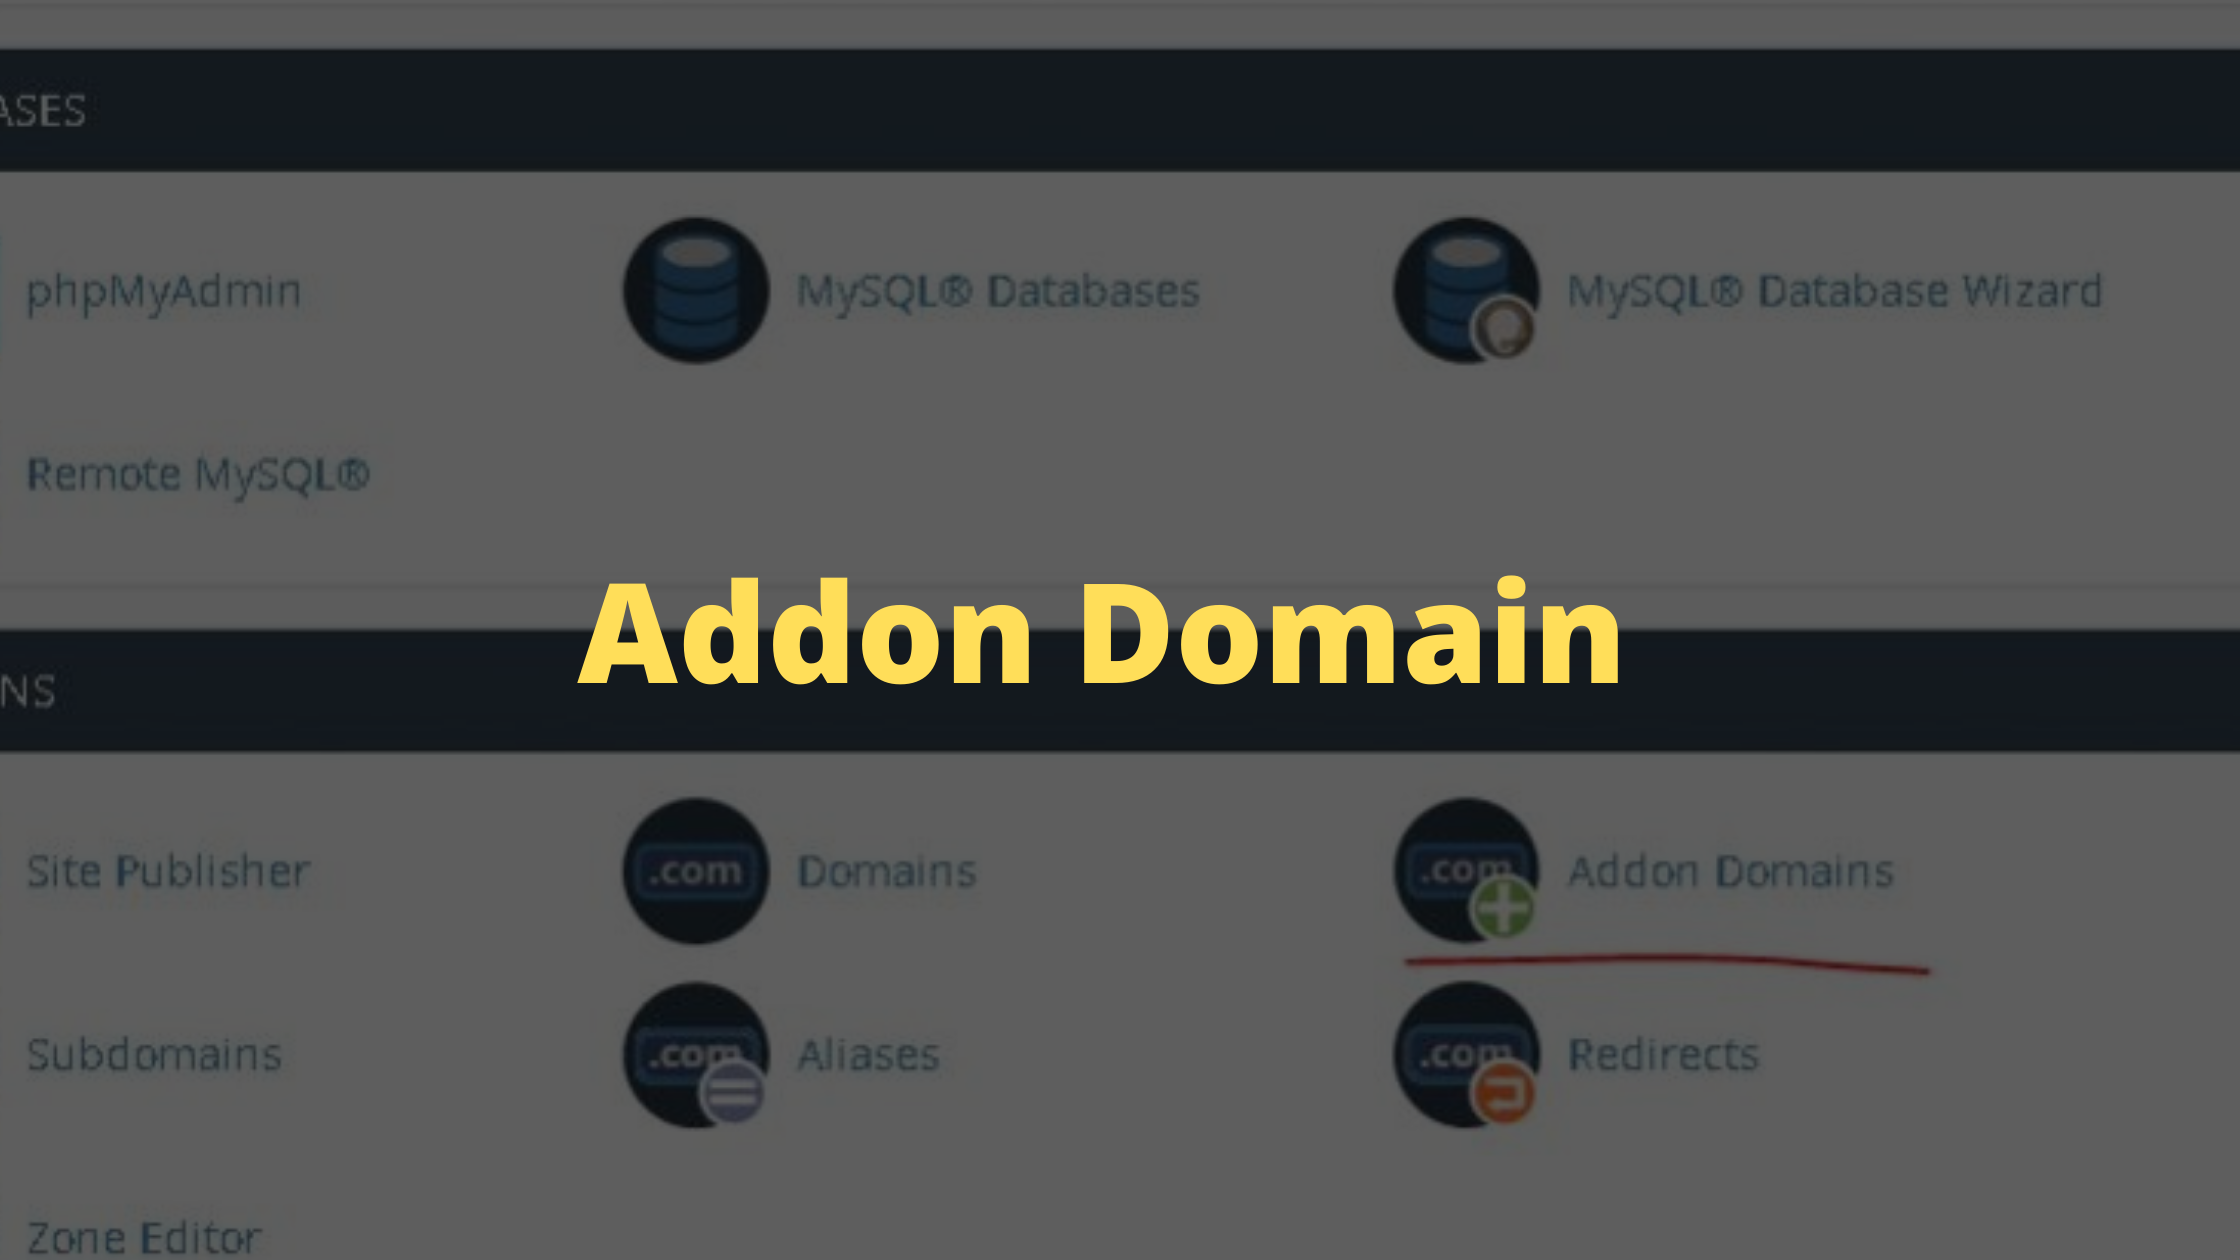 How to create an Addon Domain?